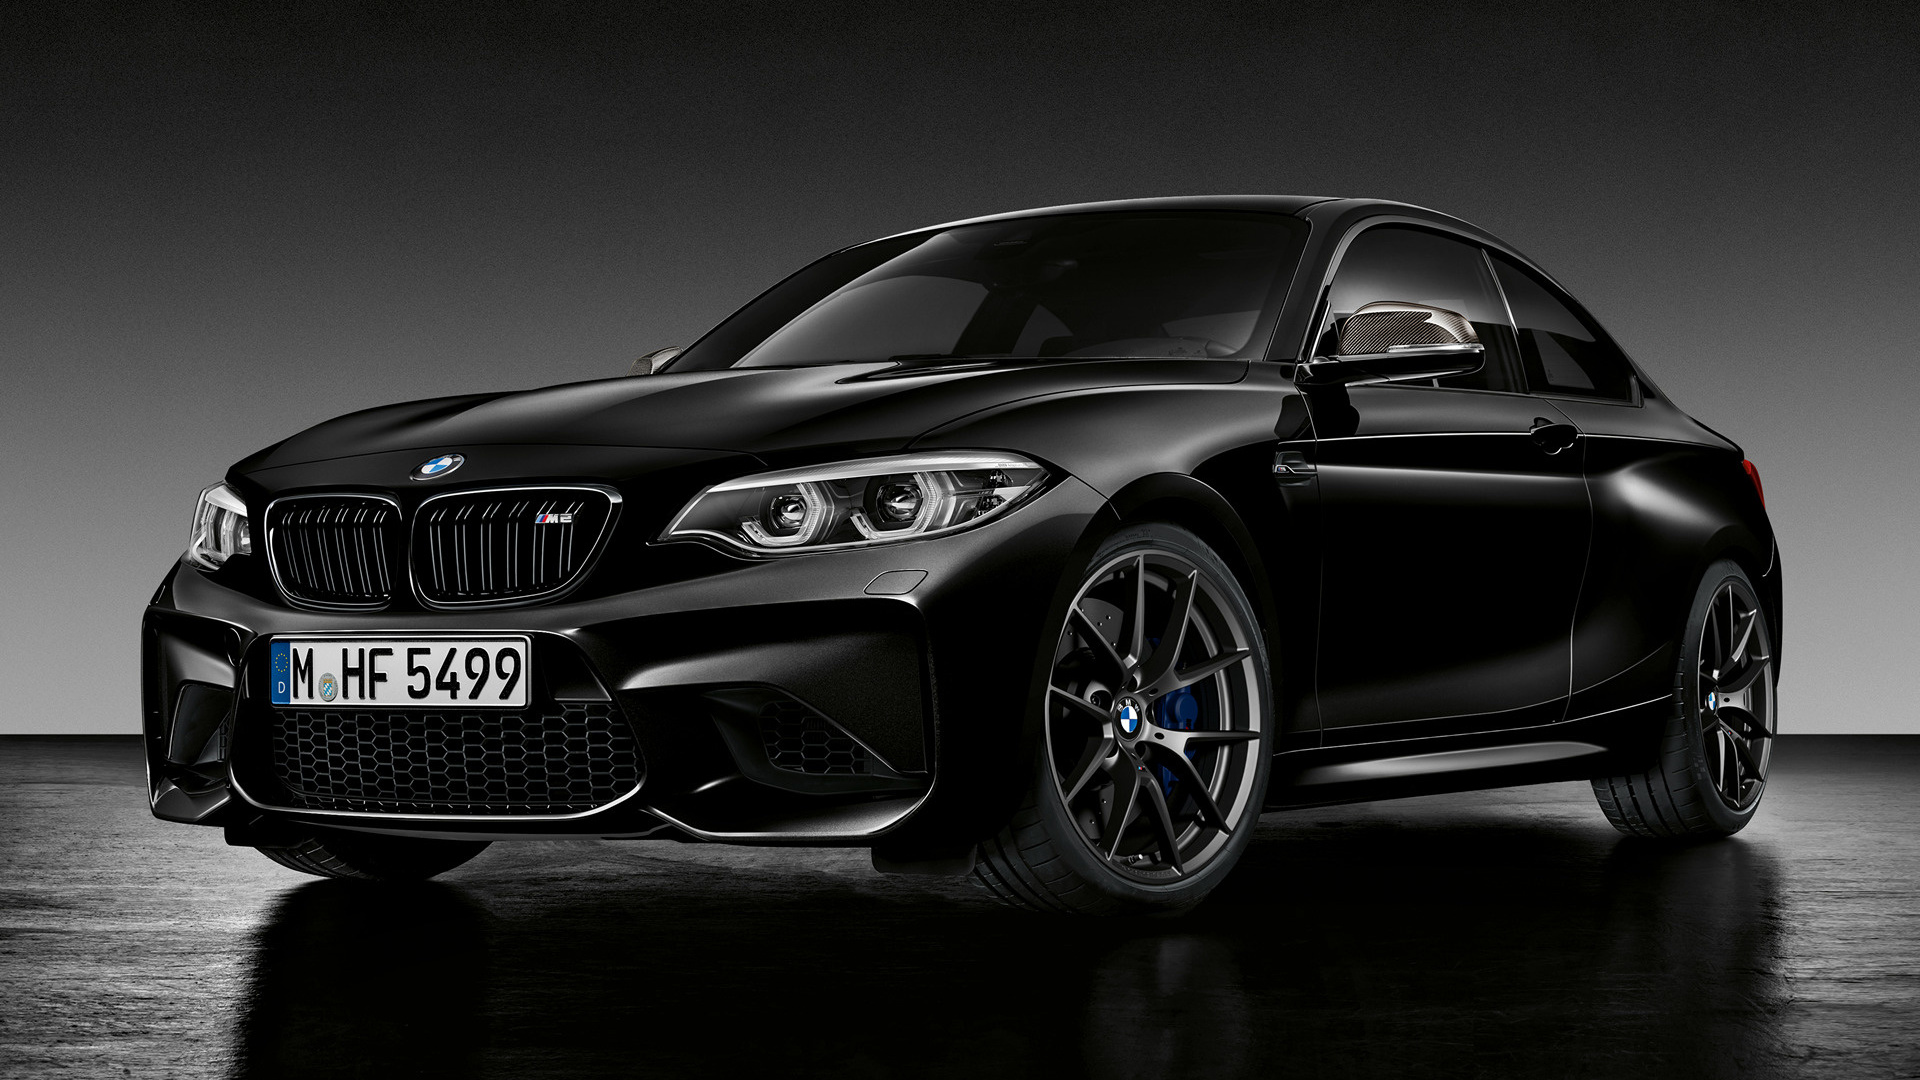 2018 BMW M2 Coupe Black Shadow Edition - Wallpapers and HD ...